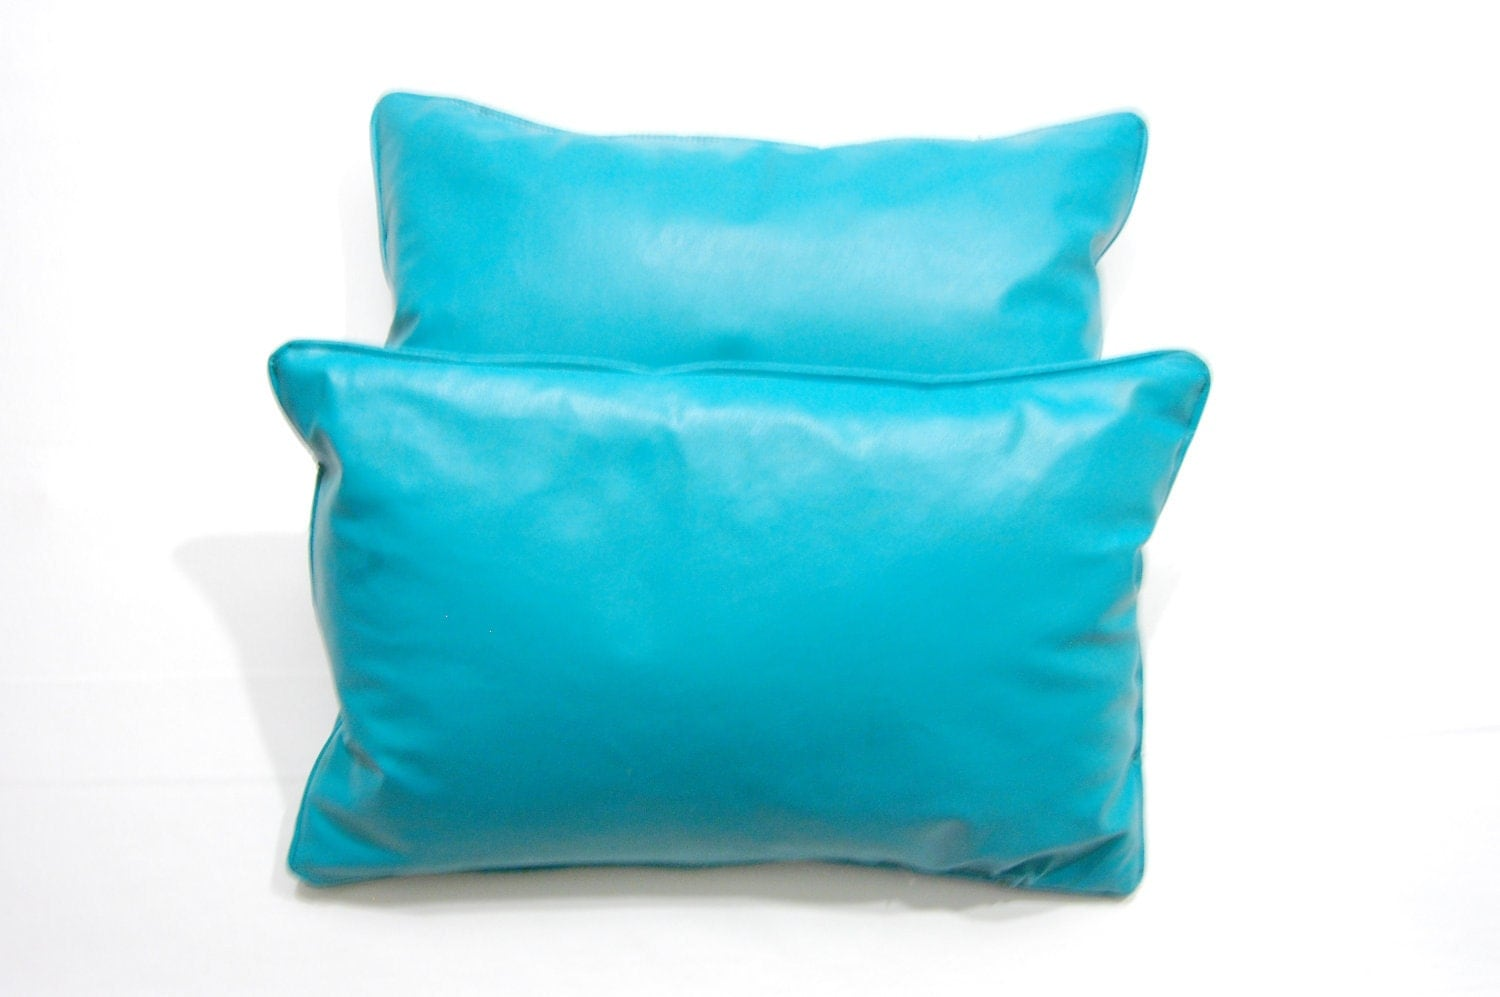 Vinyl Throw Pillows : Pair of Bright Blue Vinyl Throw Pillows by HoneyKnuckle on Etsy